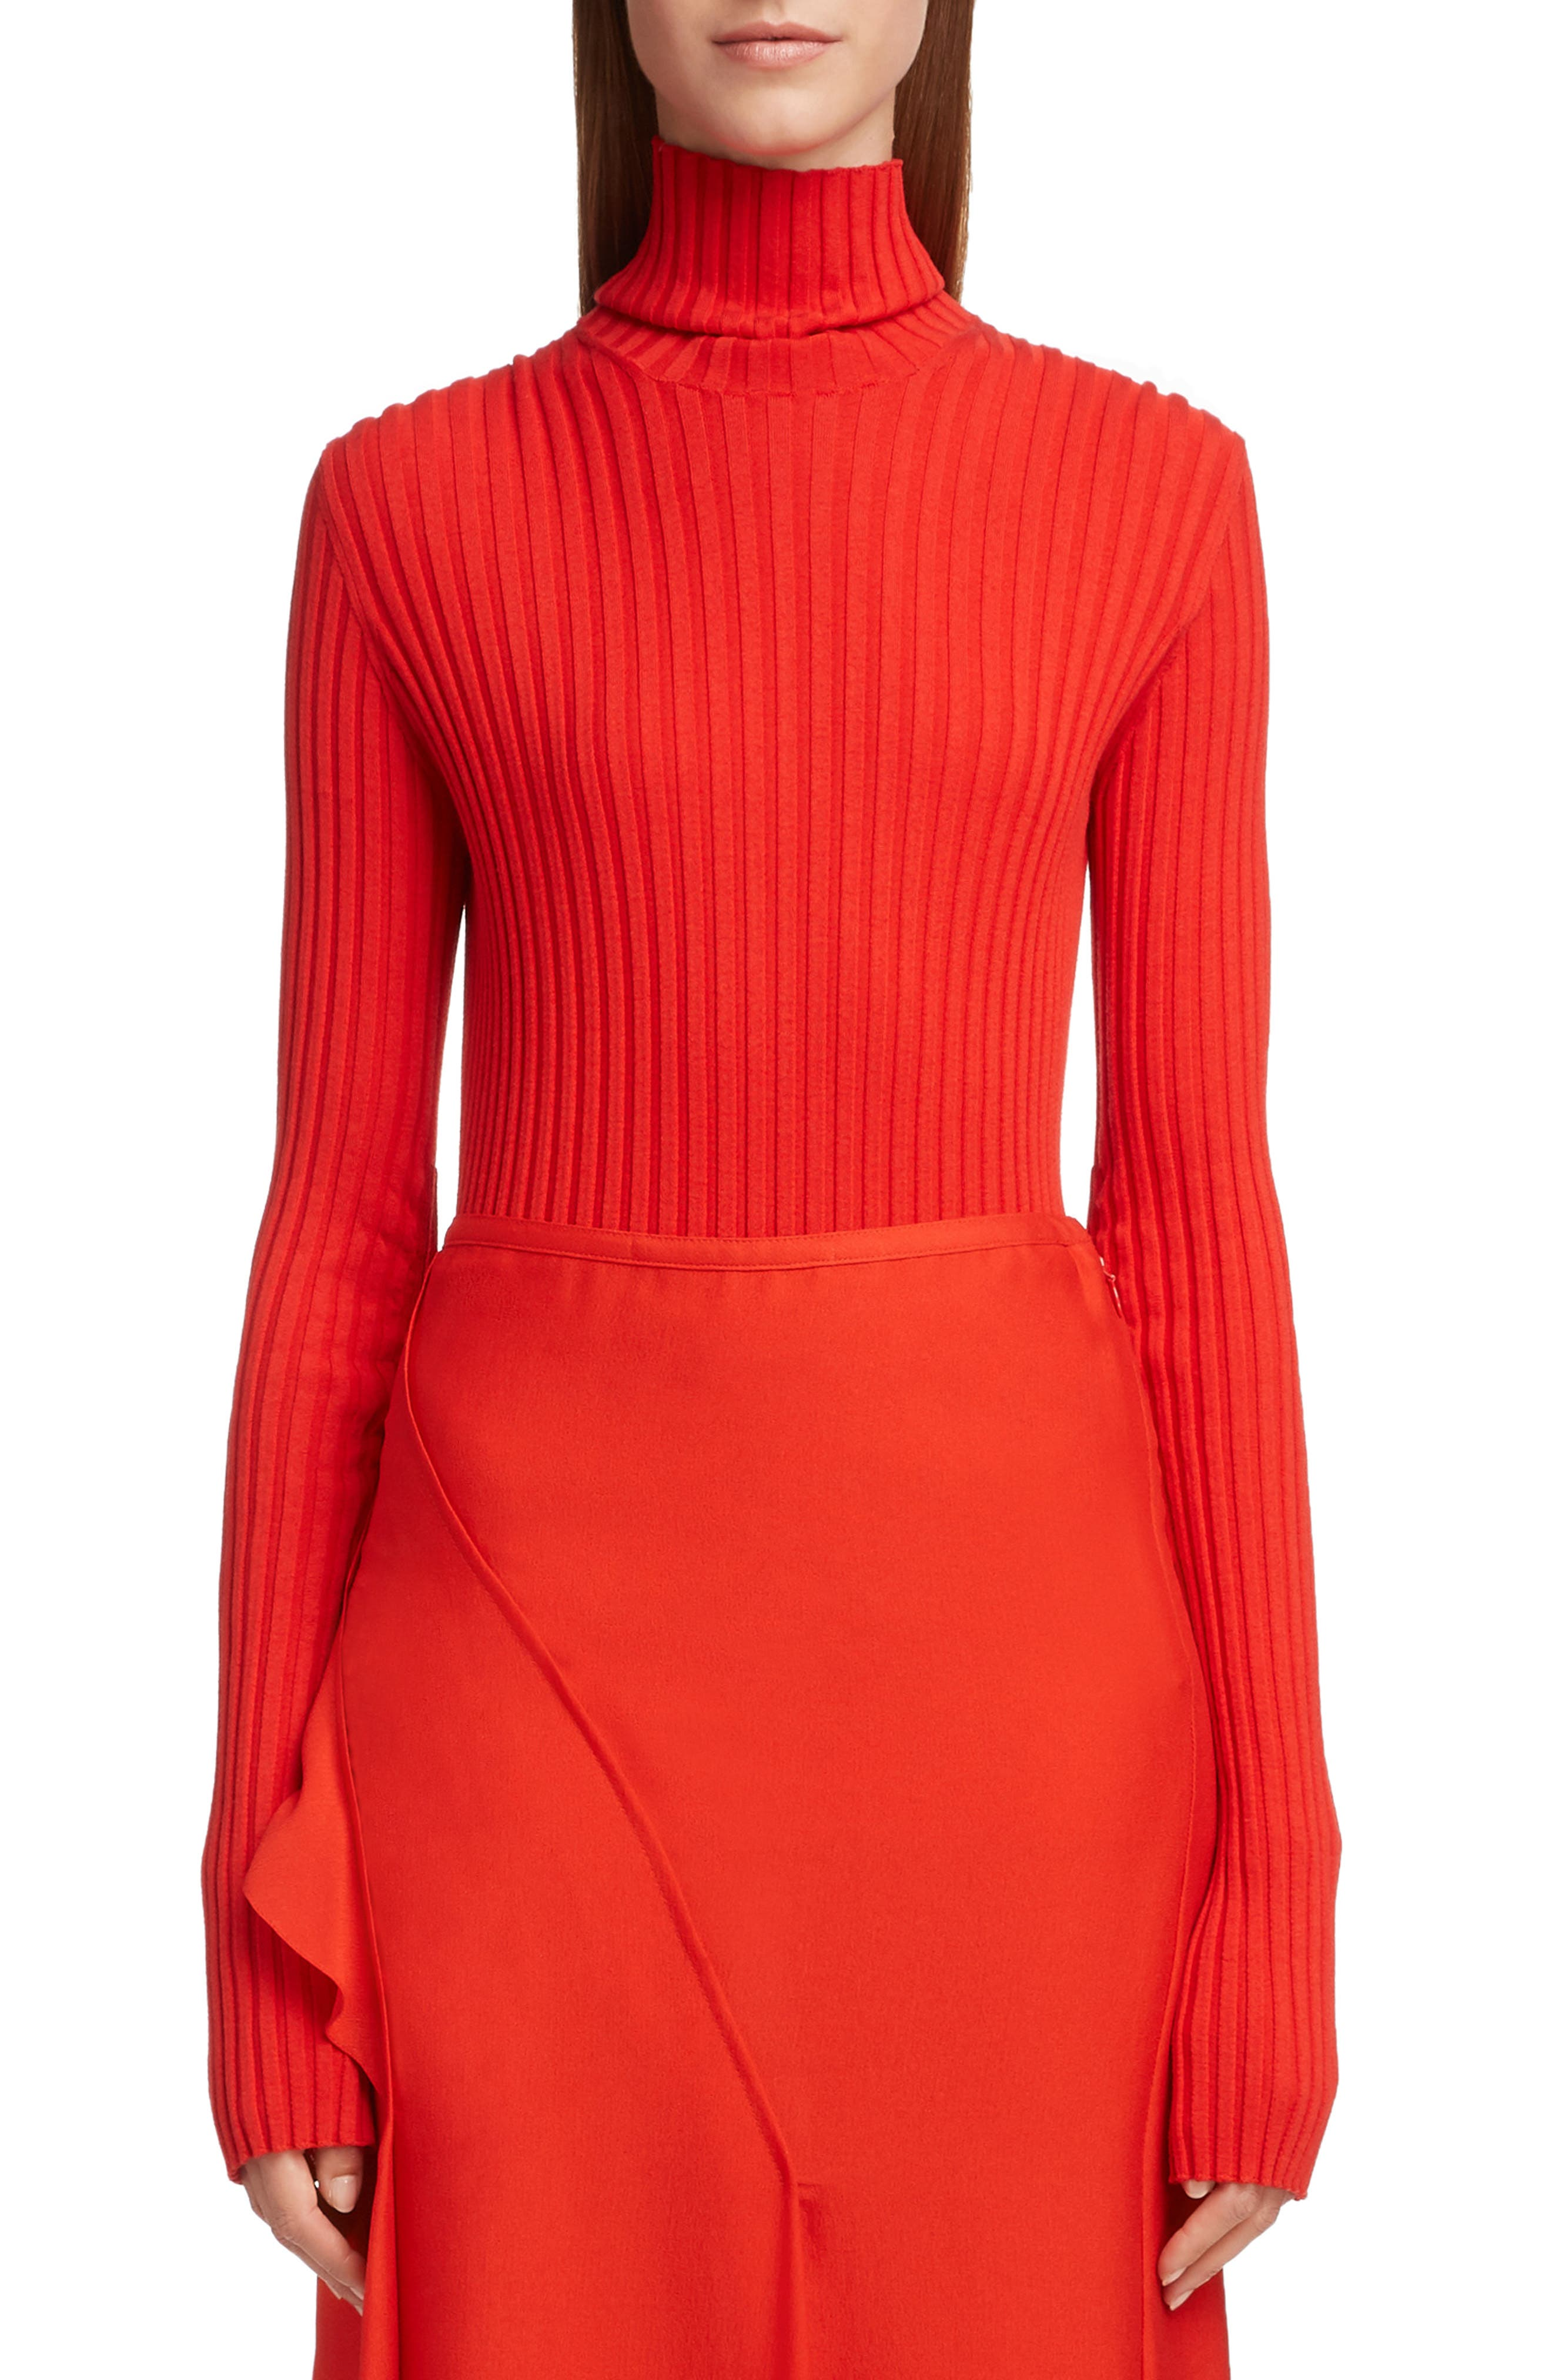 VICTORIA BECKHAM, Gathered Sleeve Rib Knit Turtleneck Sweater, Main thumbnail 1, color, BRIGHT RED